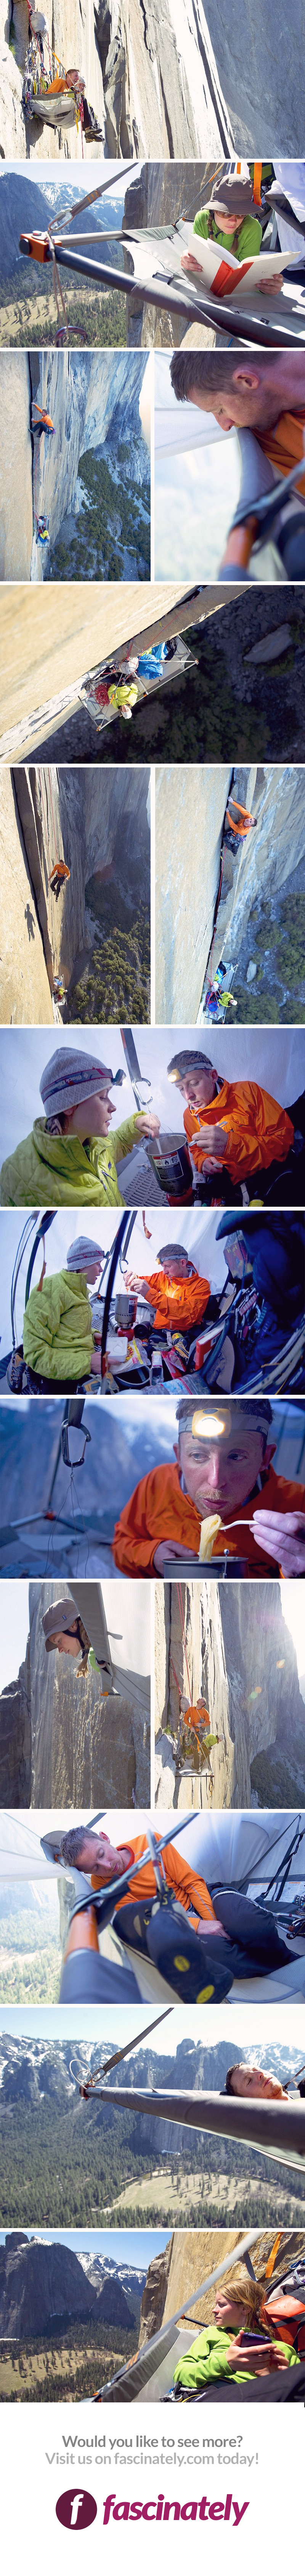 Camping Is A Great Outdoors Activity But This Brave Couple Takes